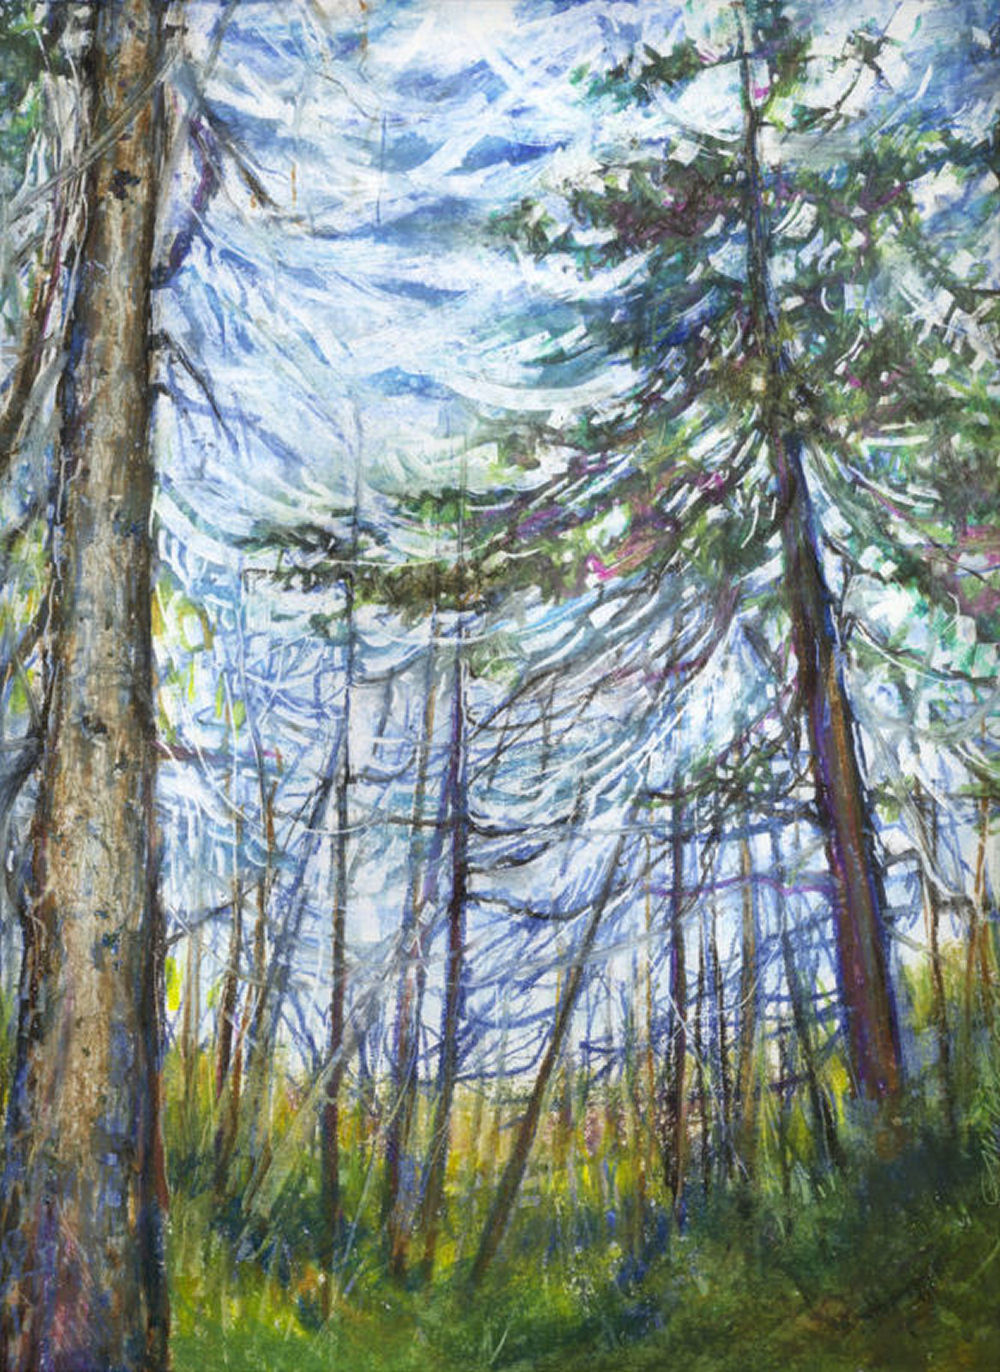 Wild Canada - Stony Swamp Trail, Ottawa, Ontario Canada -14 x 11 inches oil pastels on paper